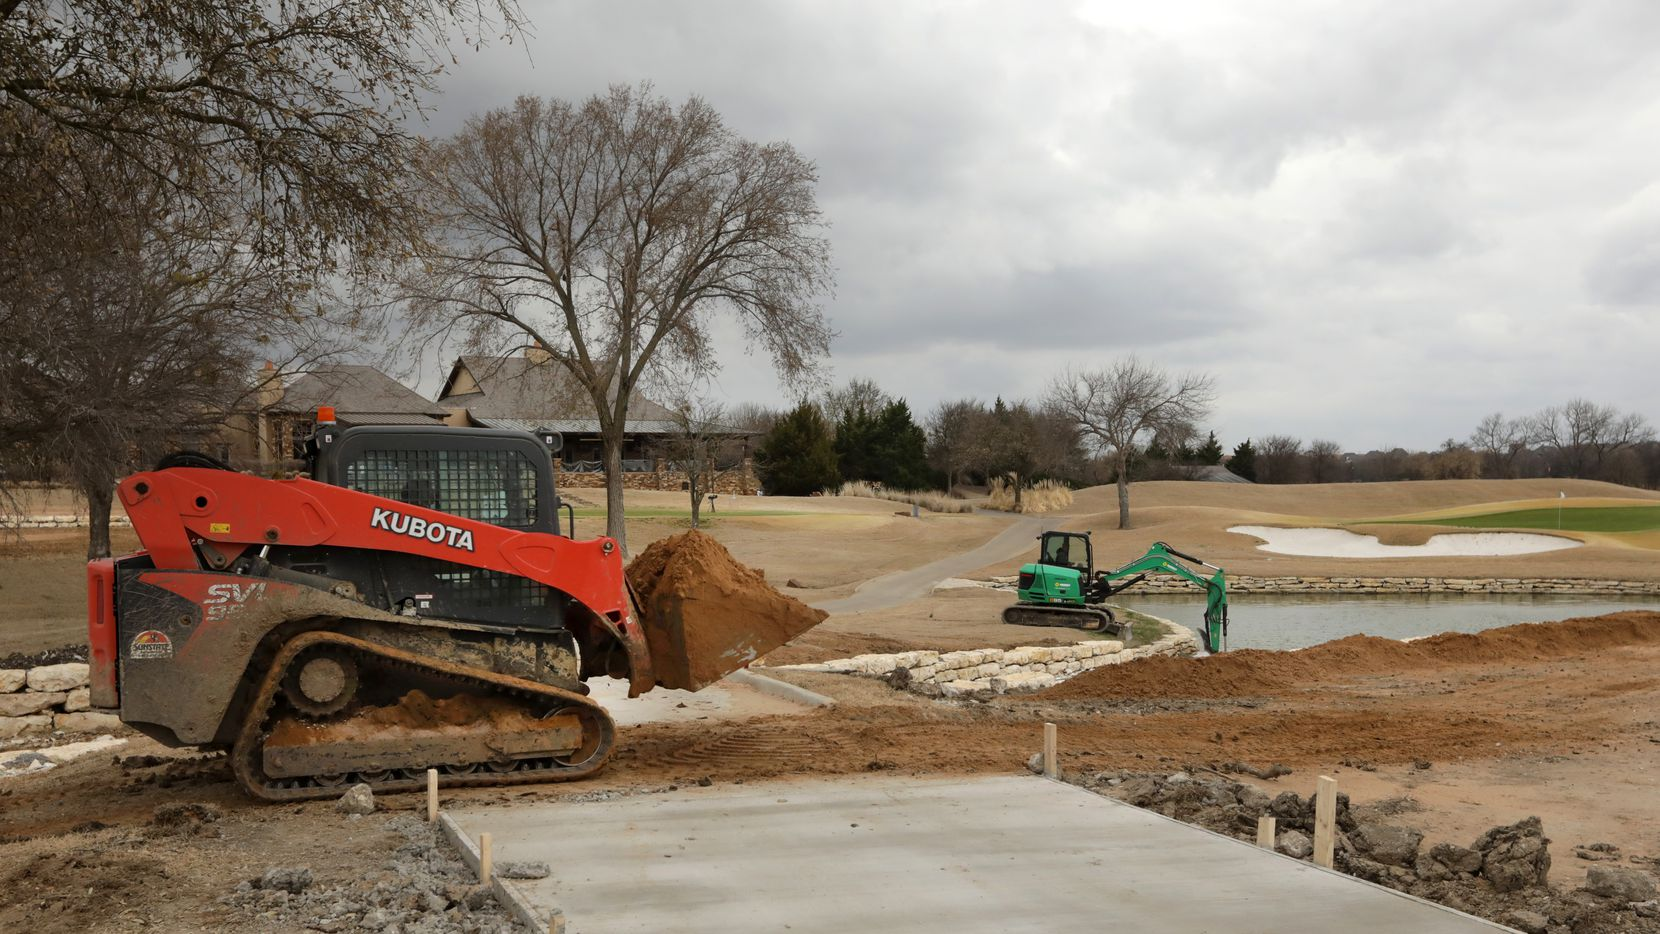 Workers prepare for the Byron Nelson tournament at TPC Craig Ranch in McKinney on Mar. 9, 2021. (Jason Janik/Special Contributor)